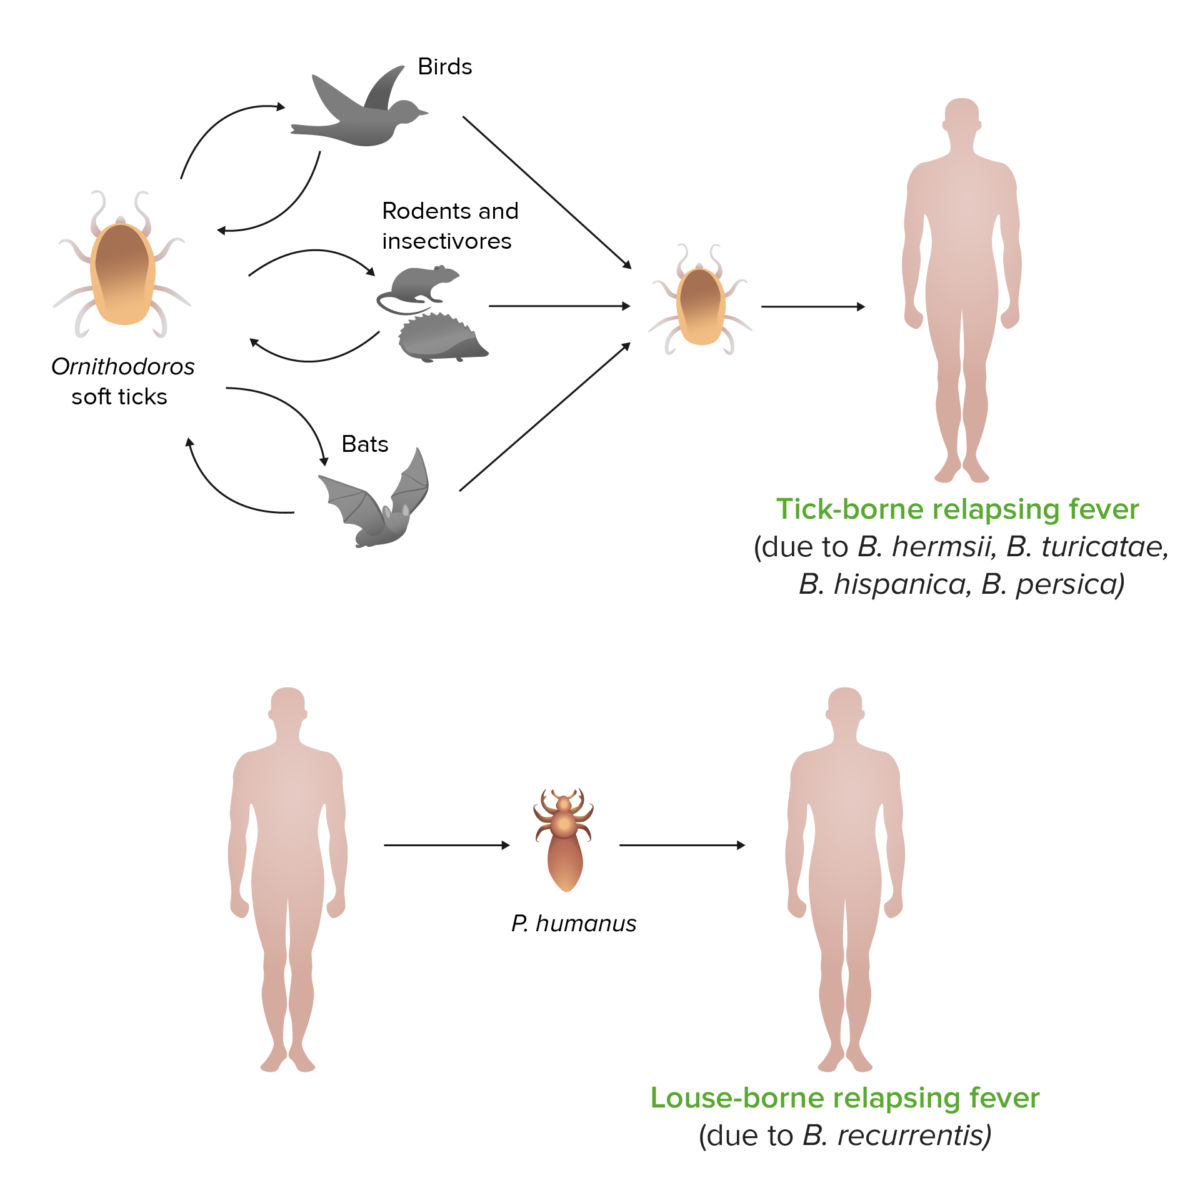 Relapsing fever vectors cycle